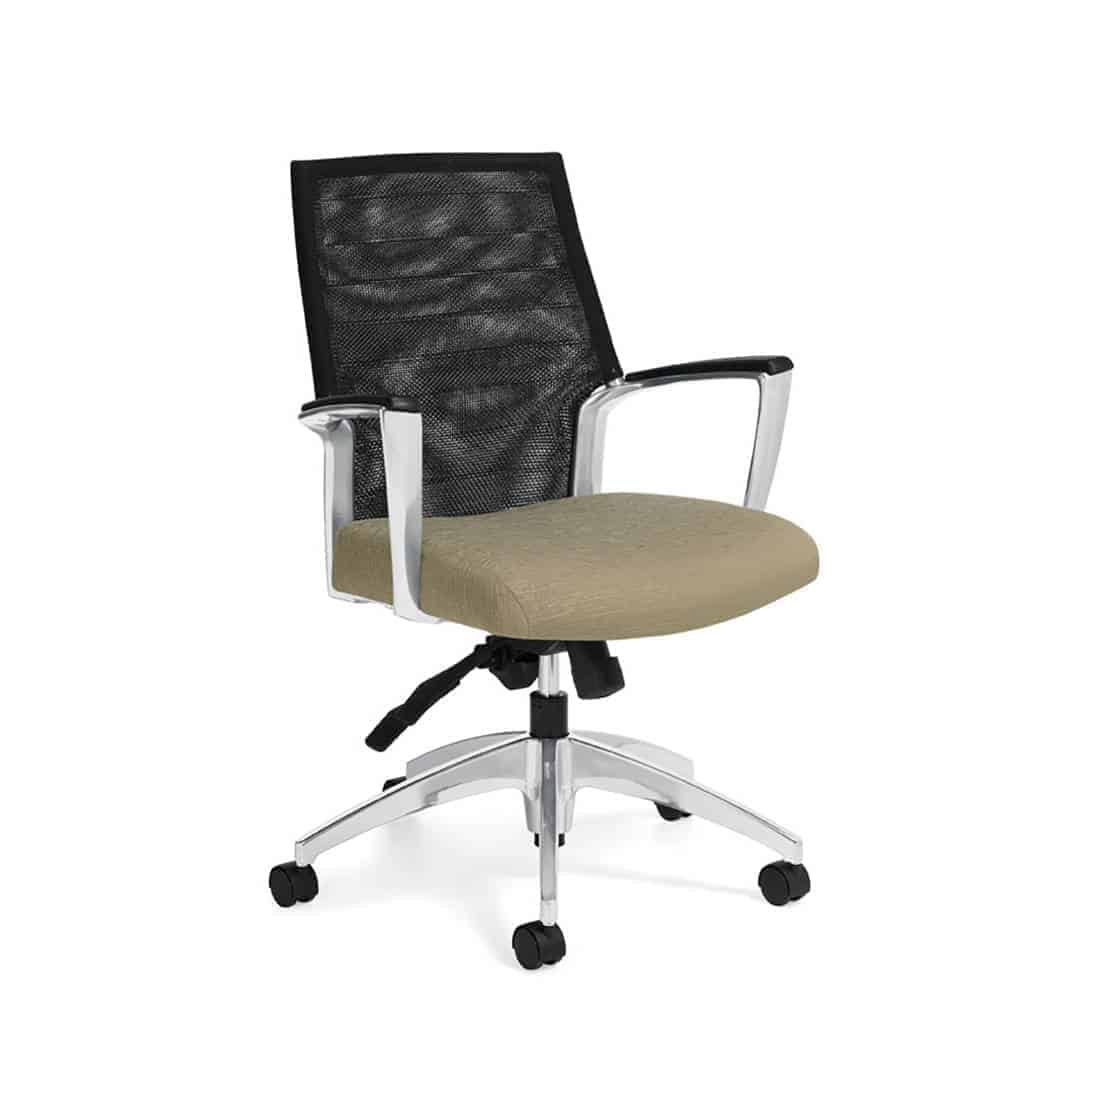 Conference room chair - Joyce Contract Interiors